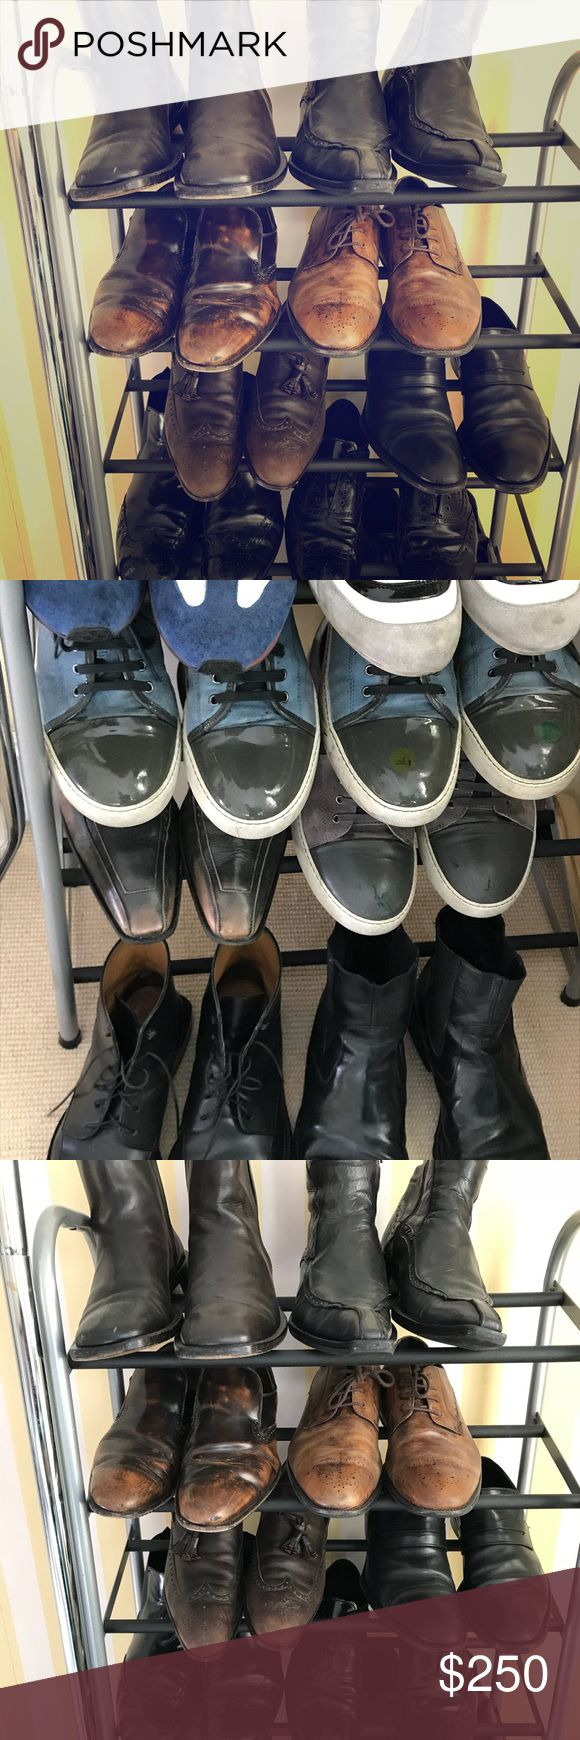 Bundle of men's high end designer shoes We are moving out and hubby decided not to take his shoes with him. They are all Authentic,used but in good condition . Brands are: Gucci ,Louis Vuitton , Prada, Christian Dior ,Lavin and etc. Selling as a bundle only! Gucci Shoes